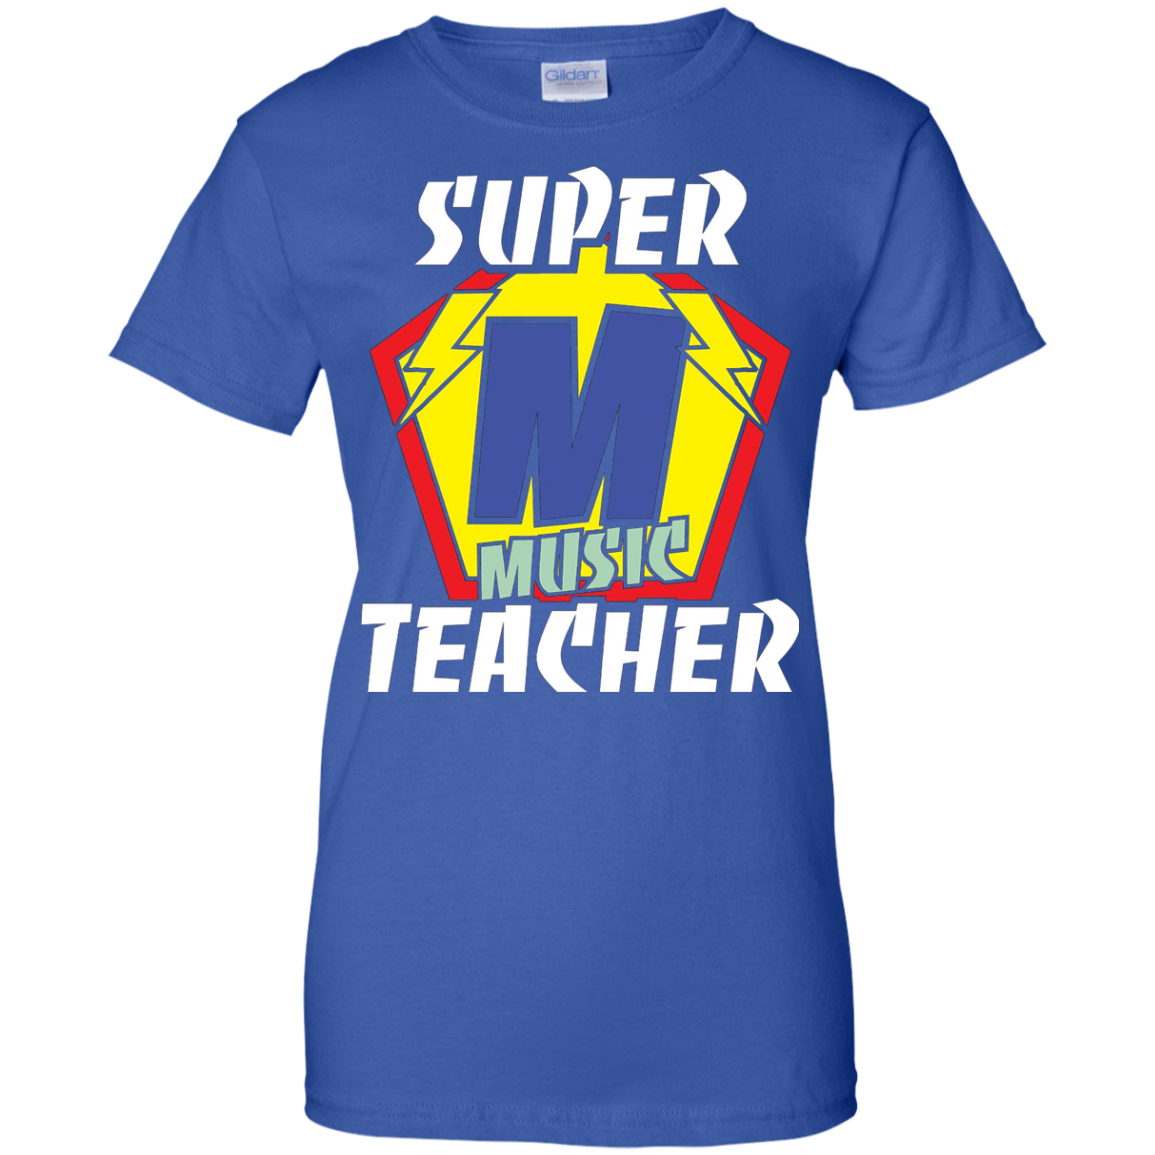 Funny Teacher Shirts Super Music Teacher